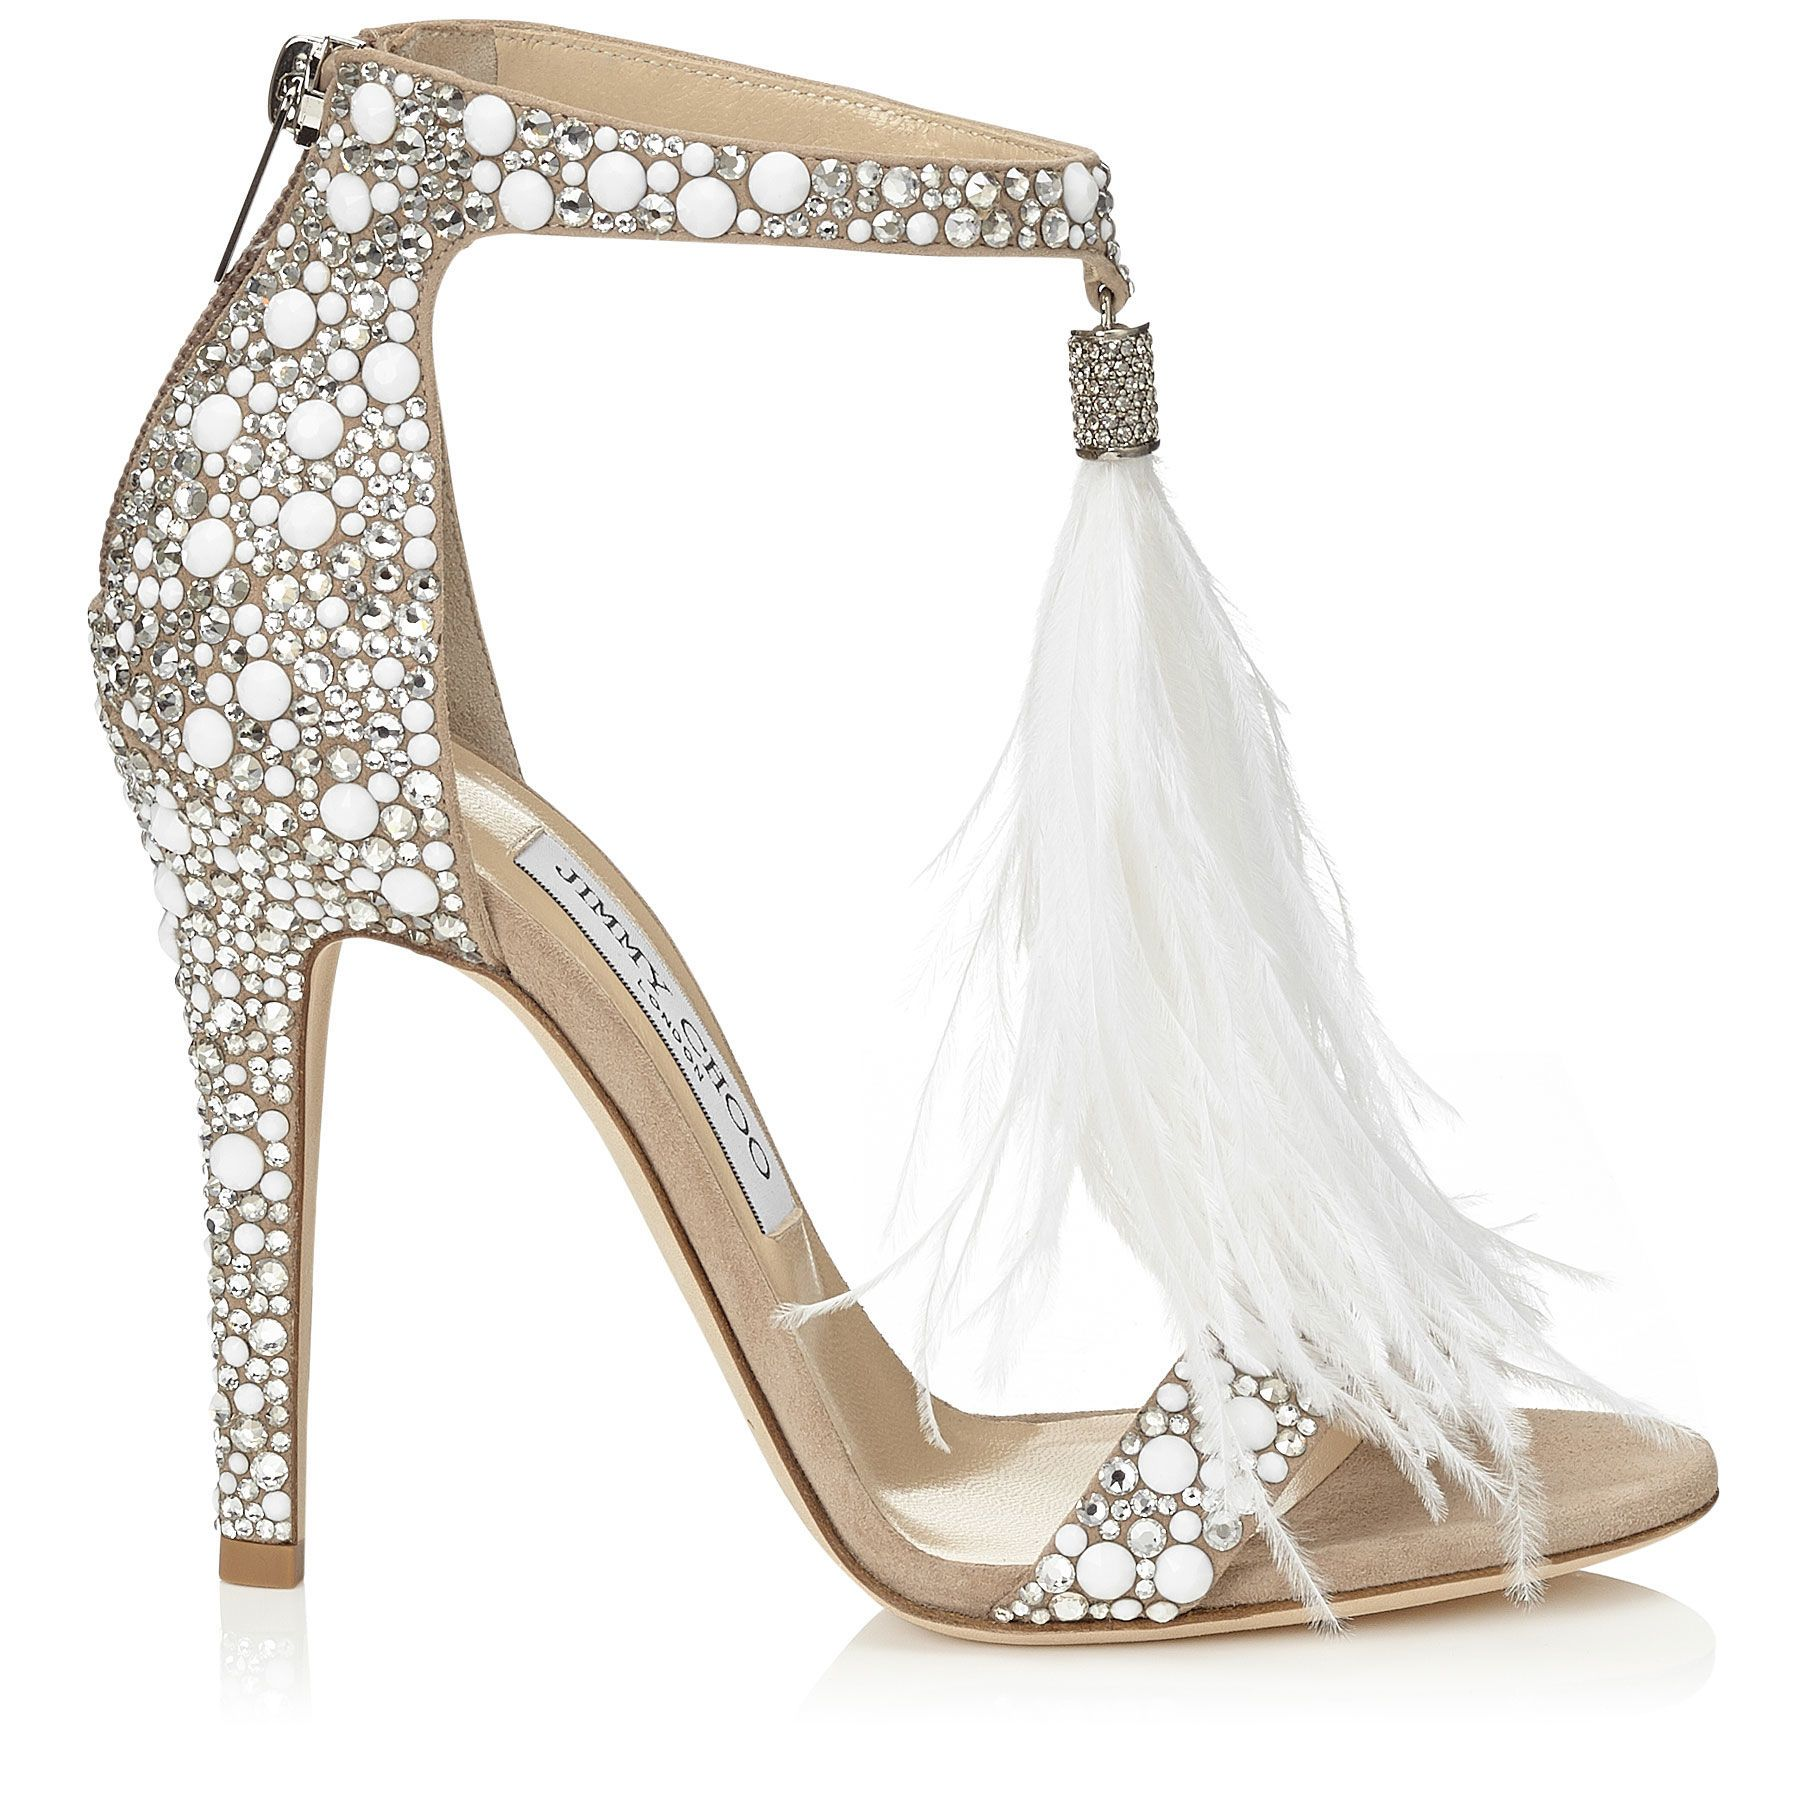 chic wedding shoe ideas wedding flats 65 Best Wedding Shoes Ivory Silver Blue and More Bridal Heels and Wedding Flats